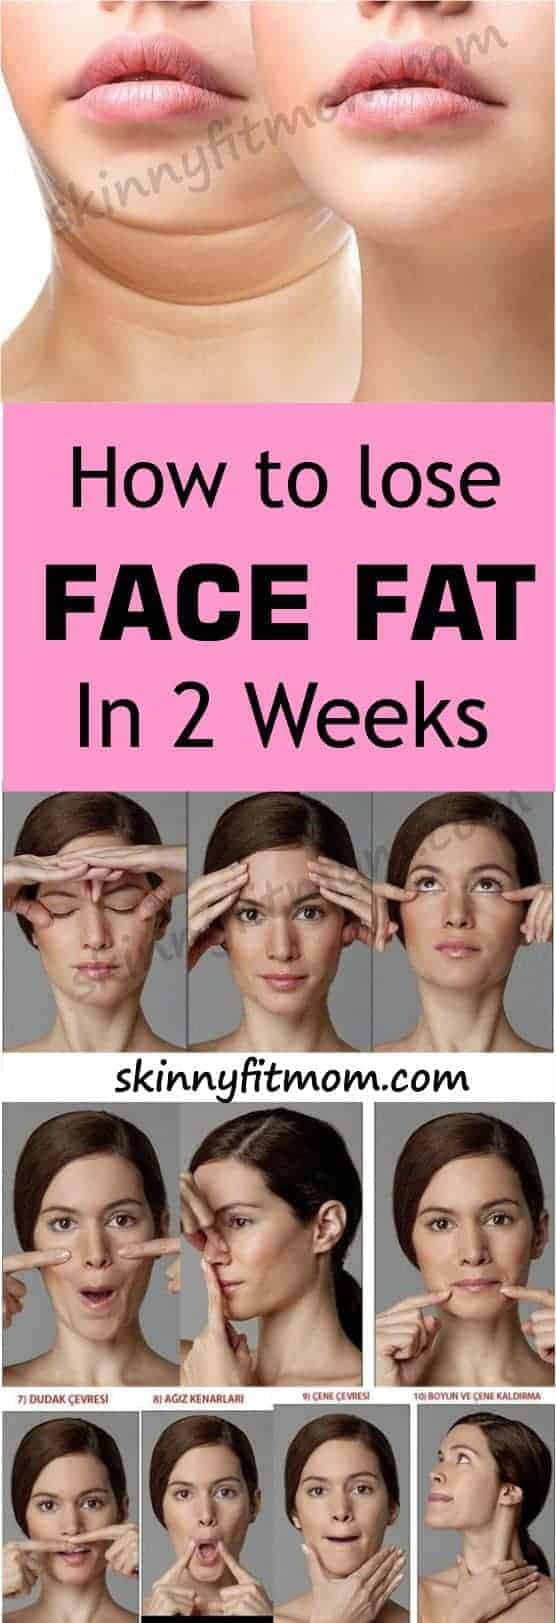 how to lose face fat in 2 weeks